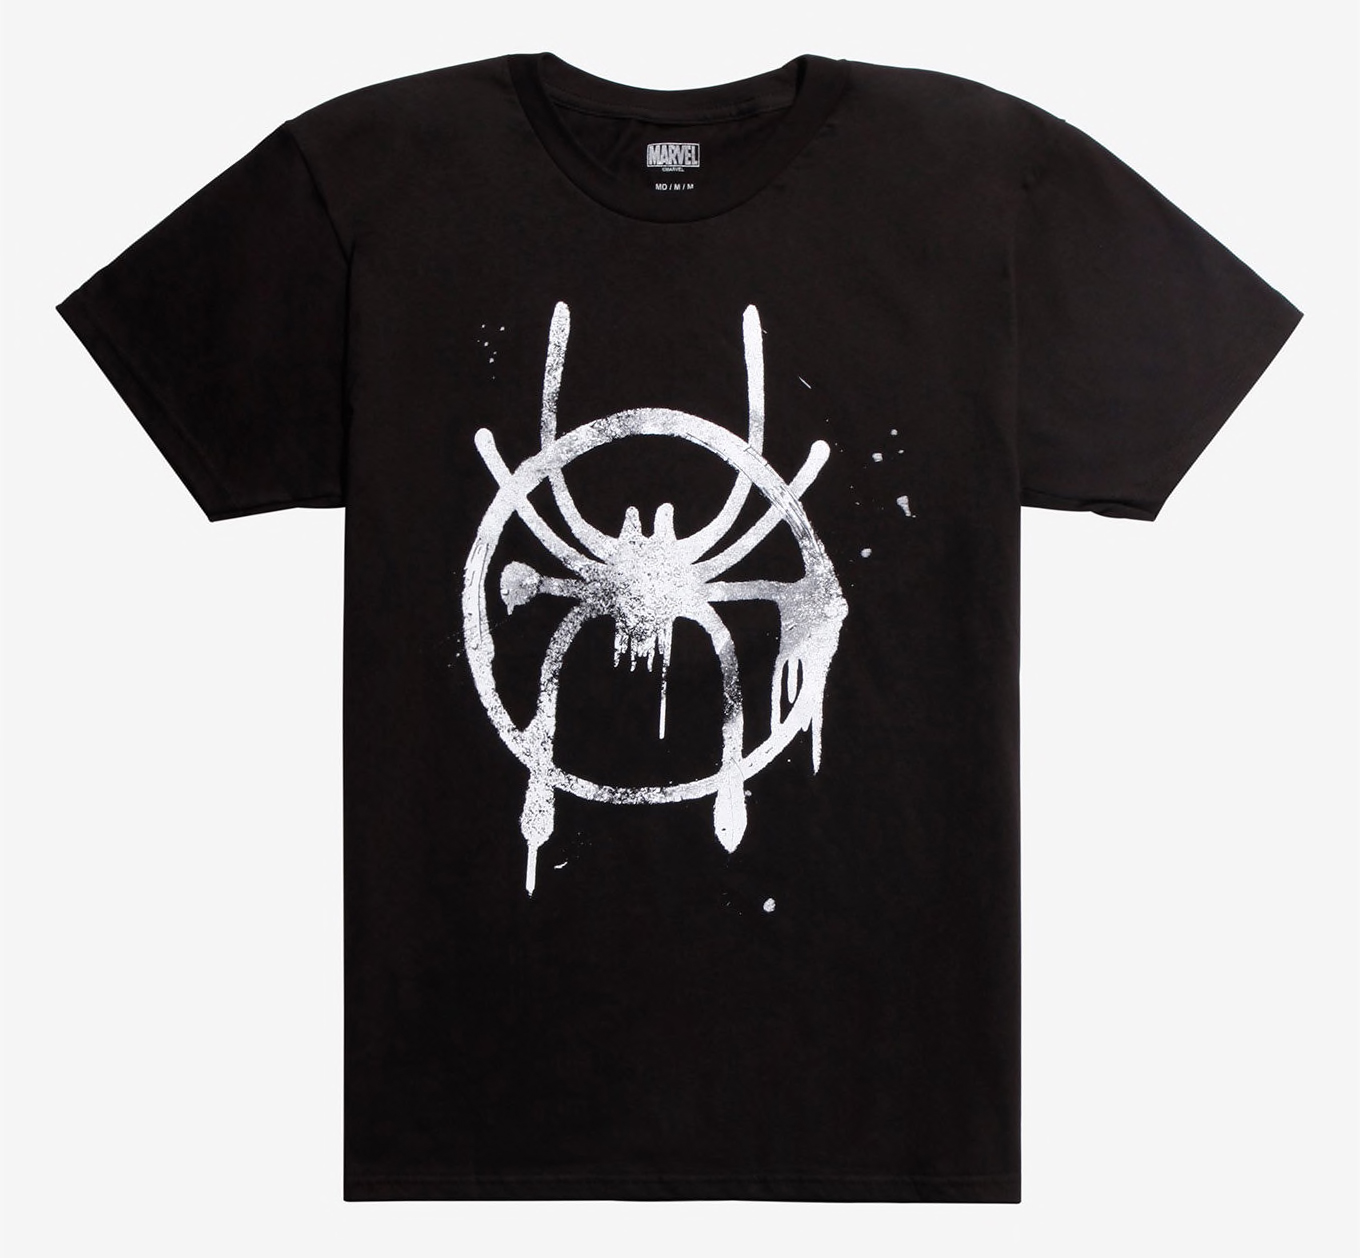 spiderman-spider-verse-shirt-match-jordan-1-origin-story-3